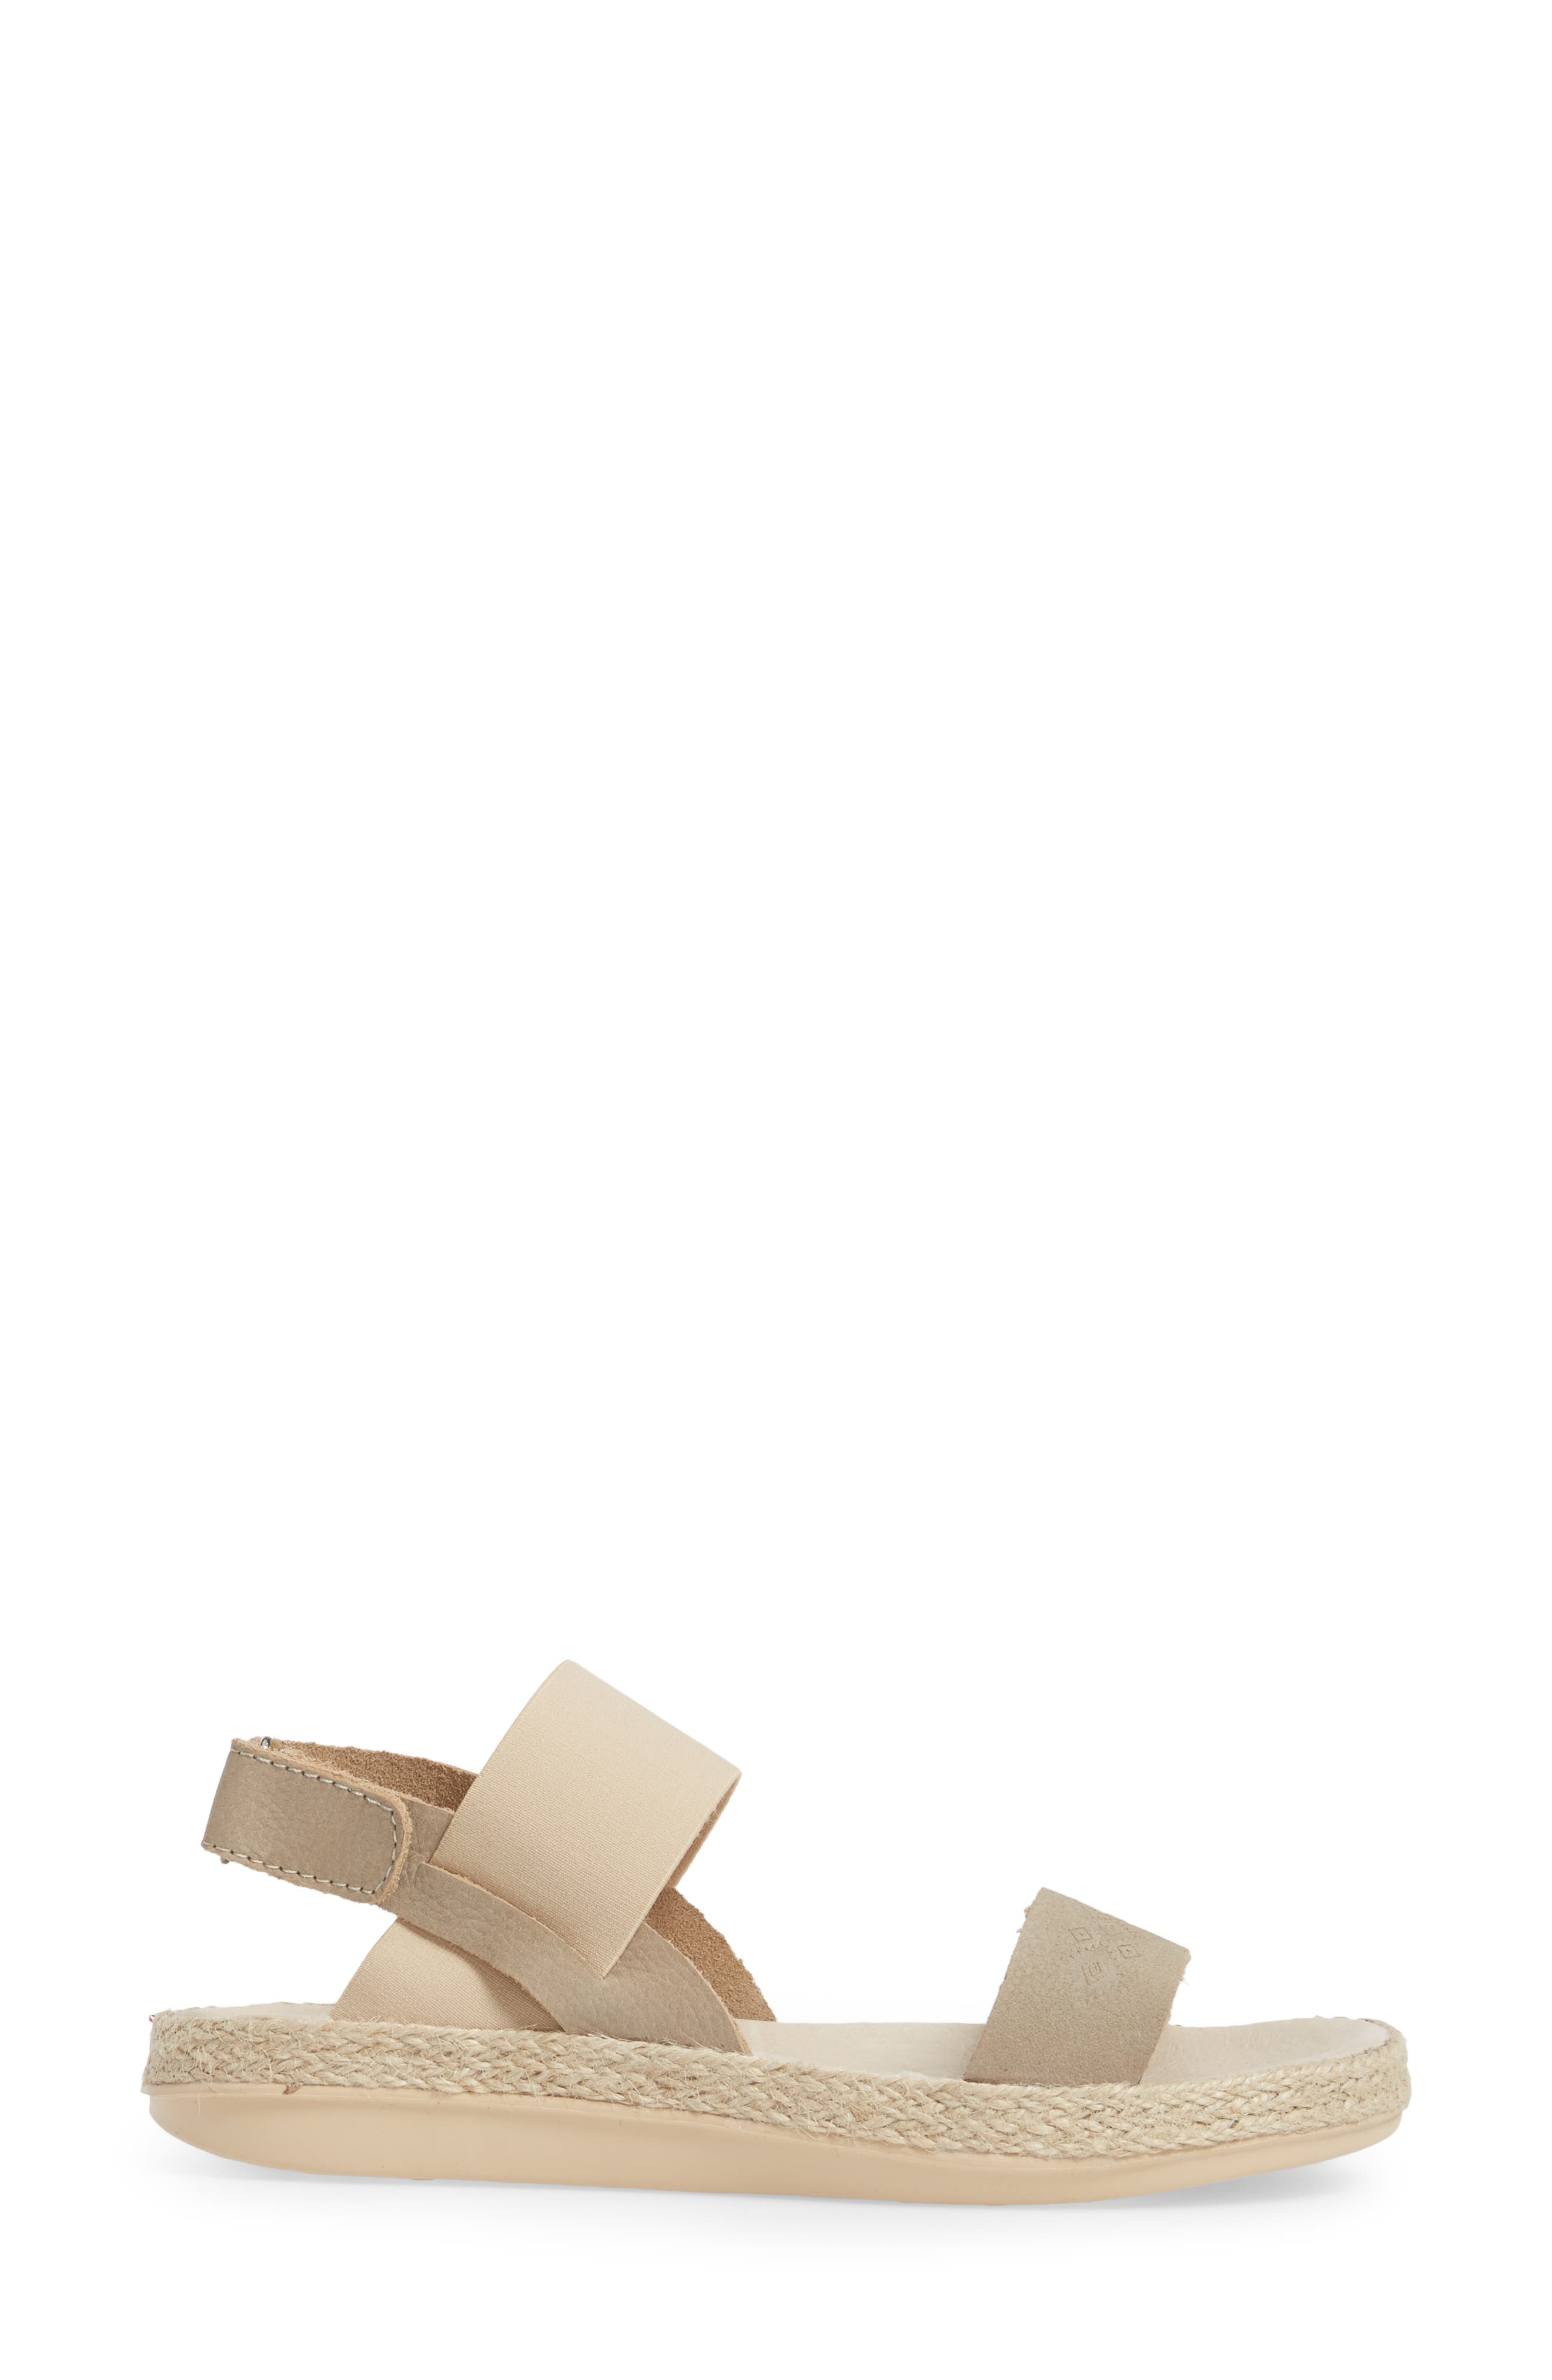 Tobermory Sandal,                             Alternate thumbnail 3, color,                             Taupe Leather